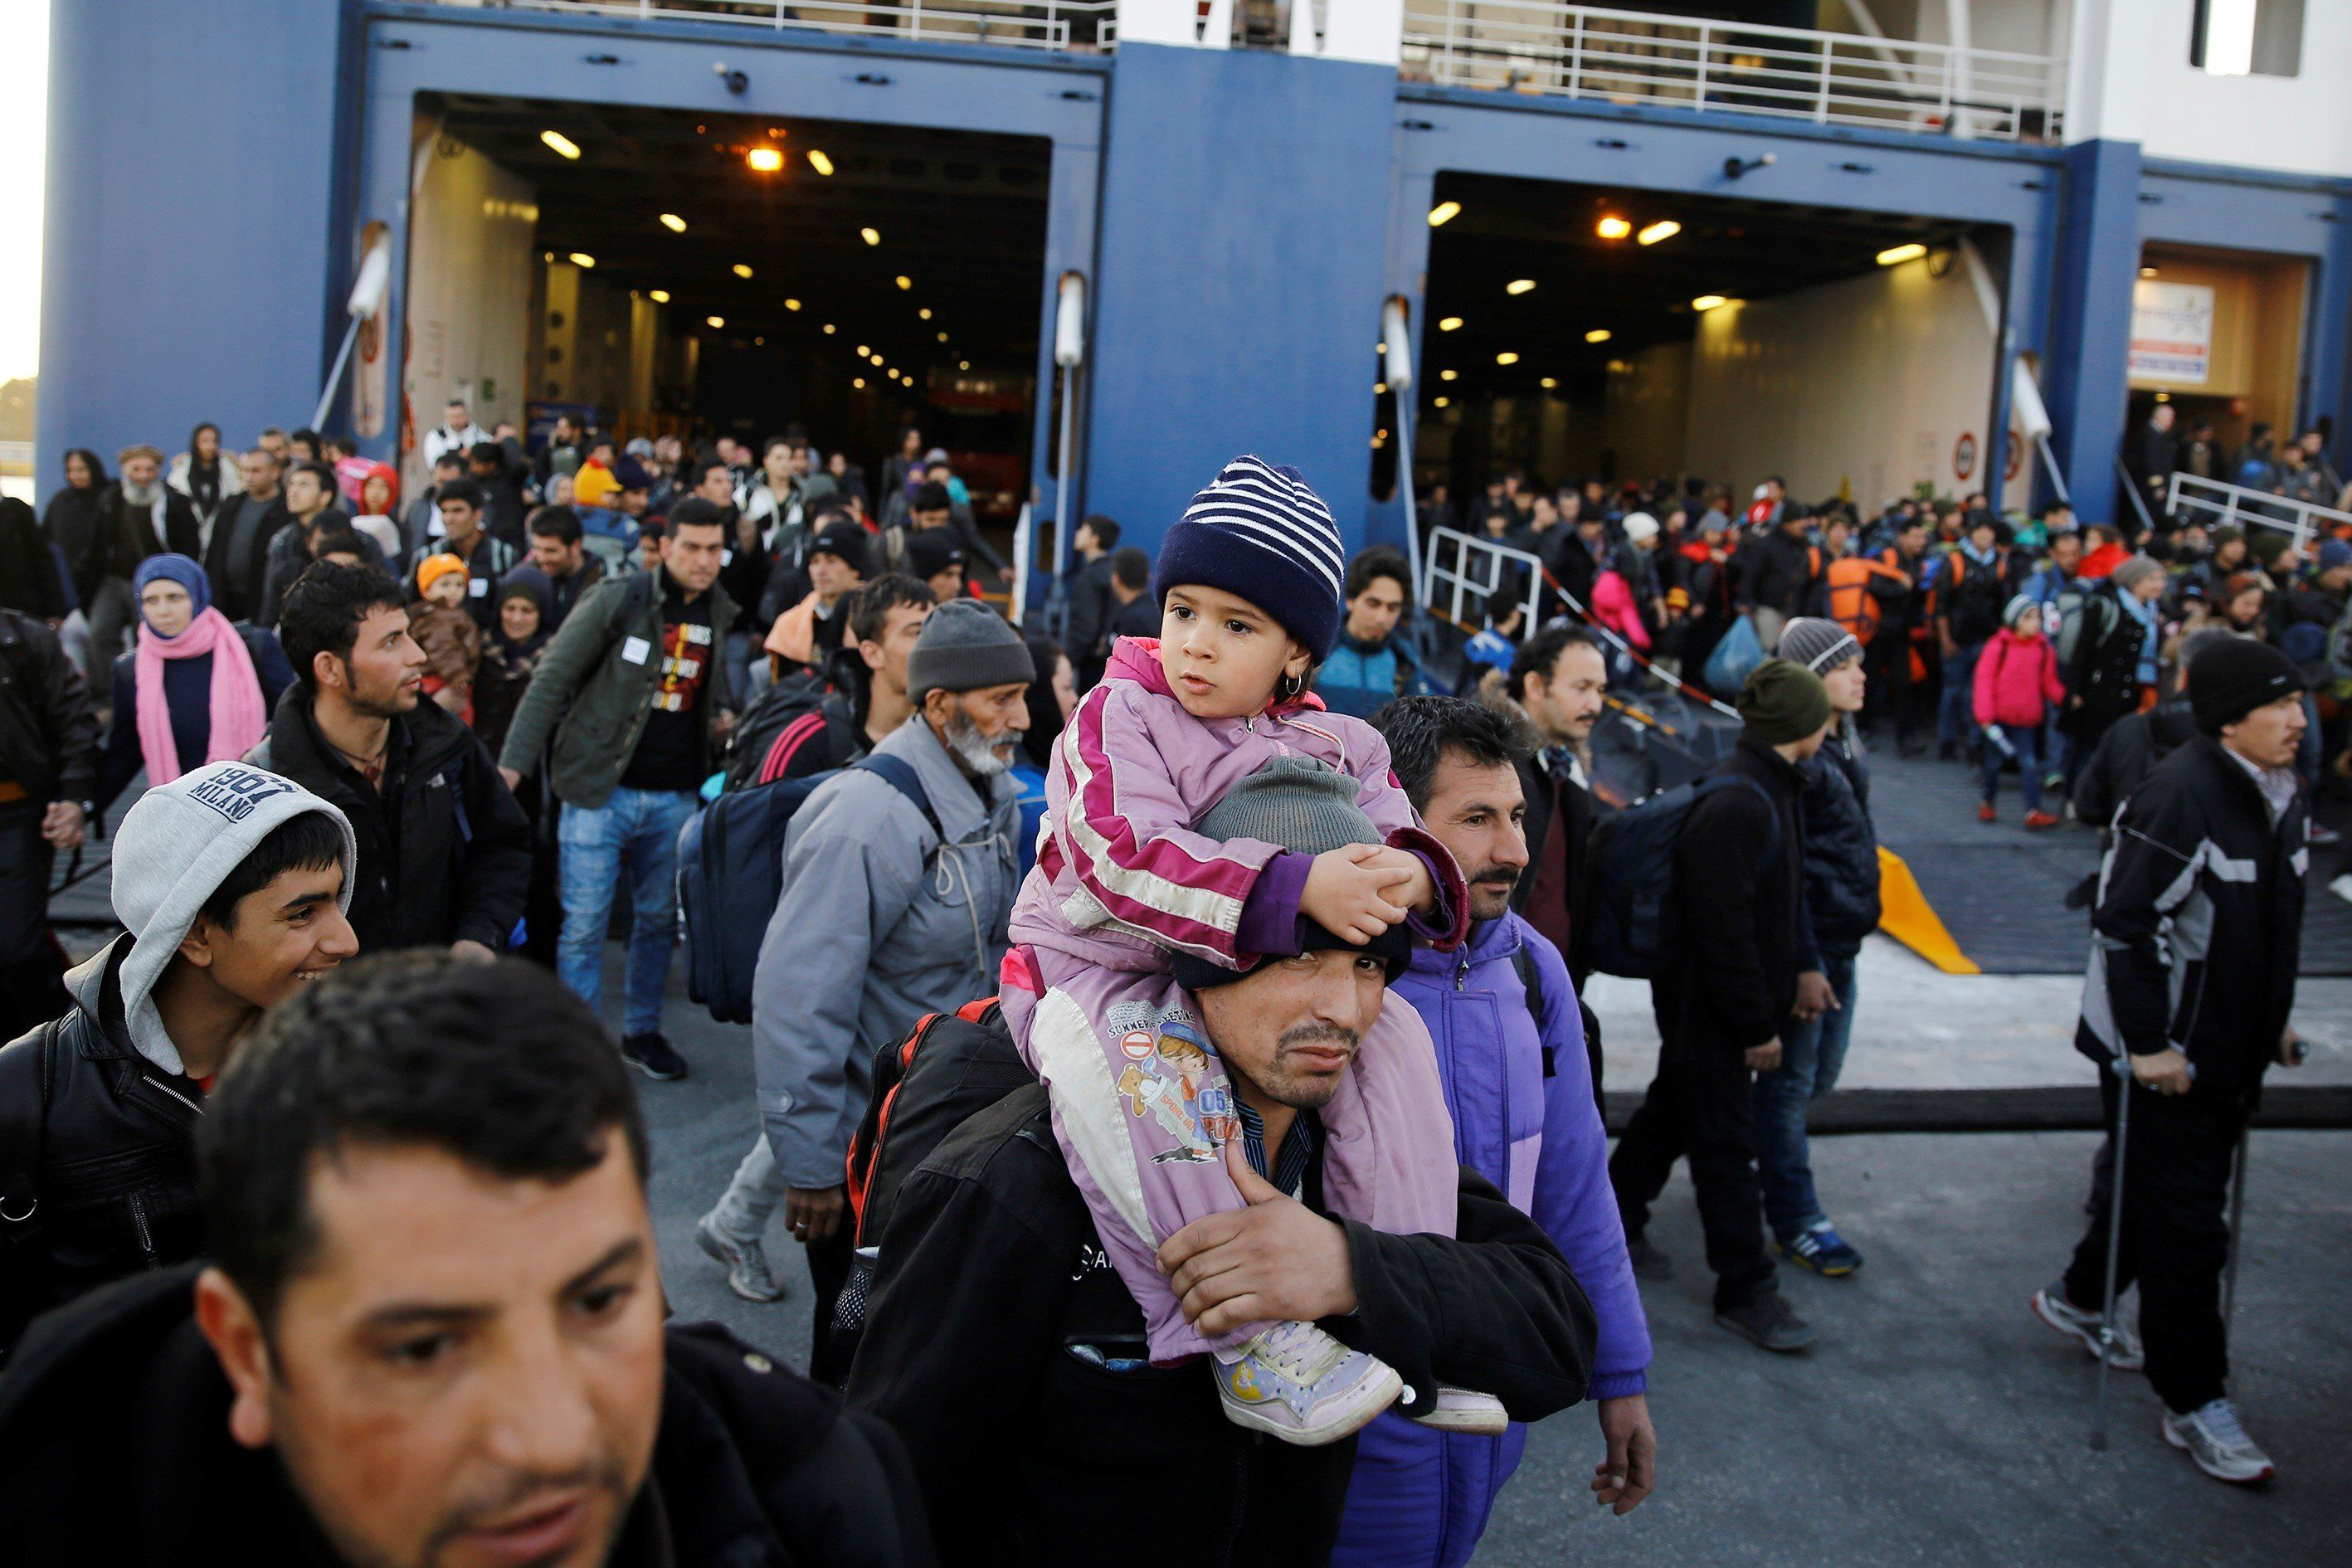 ATHENS, GREECE - JANUARY 31: Syrian refugees are seen after they arrived to port of Piraeus by the passenger ships charted by Greek government in Athens, Greece on January 31, 2016.   (Photo by Ayhan Mehmet/Anadolu Agency/Getty Images)